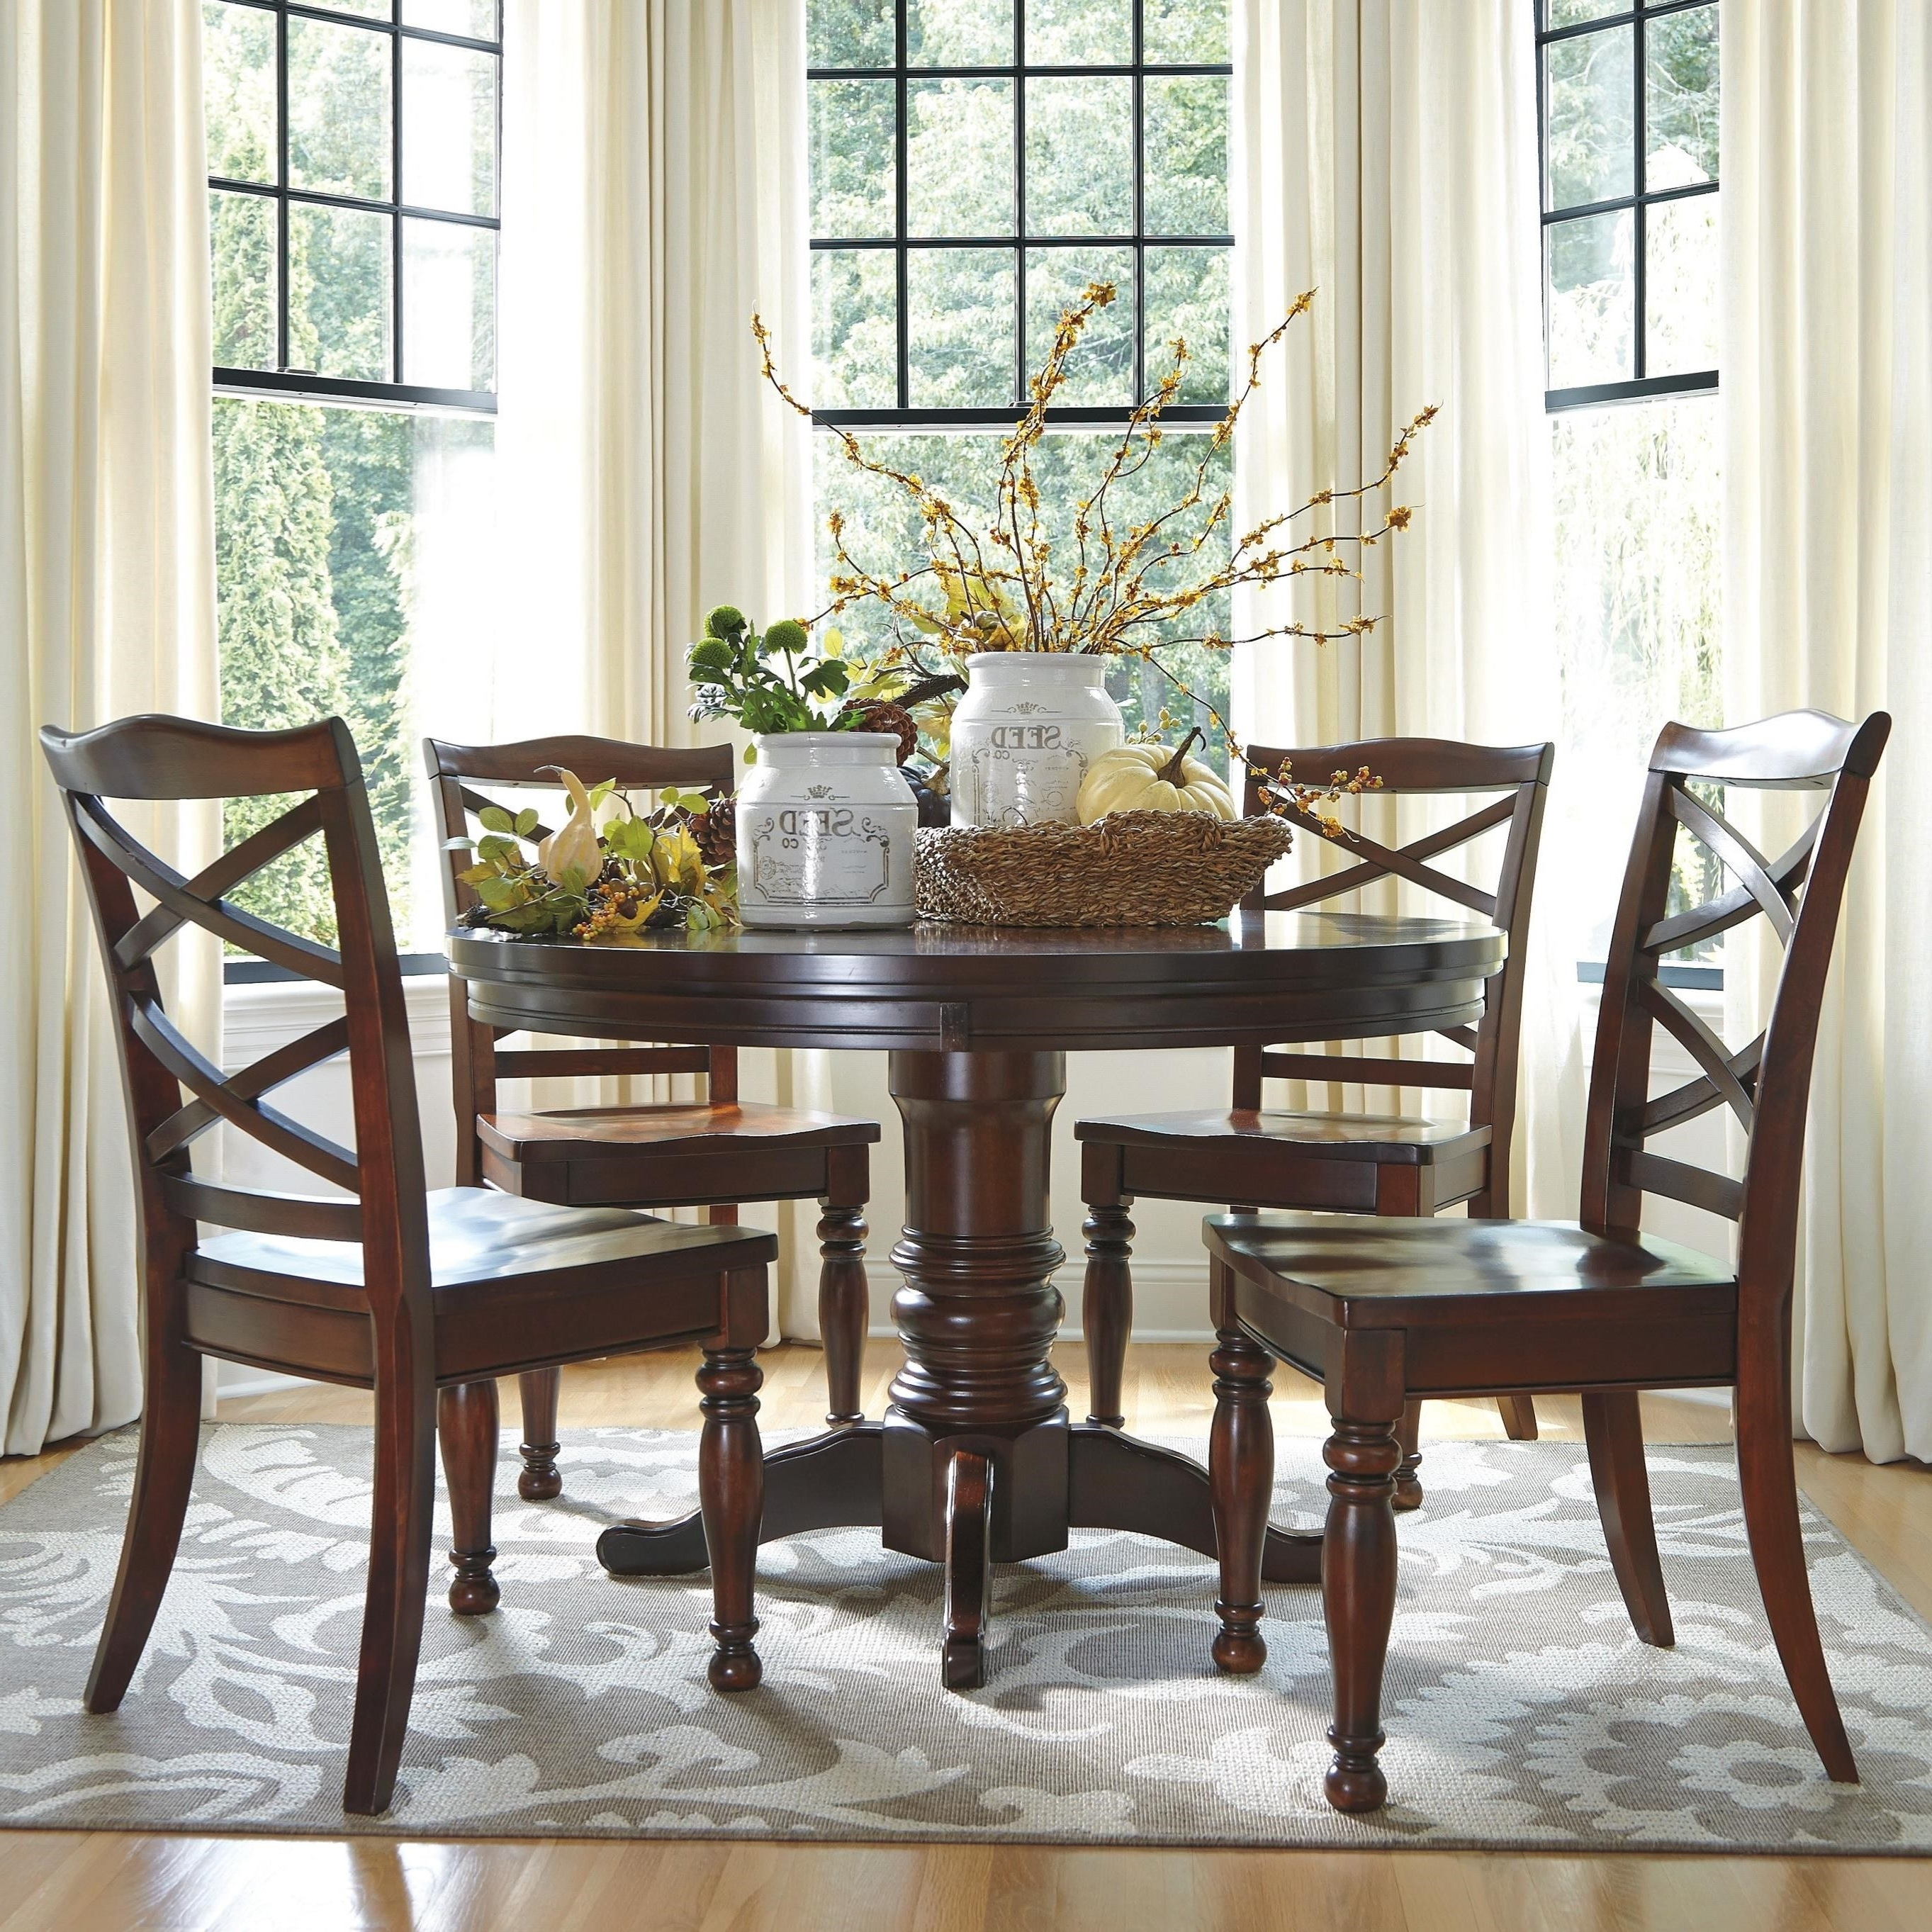 Dining Set Round Table – Castrophotos Regarding Popular Macie 5 Piece Round Dining Sets (View 13 of 25)